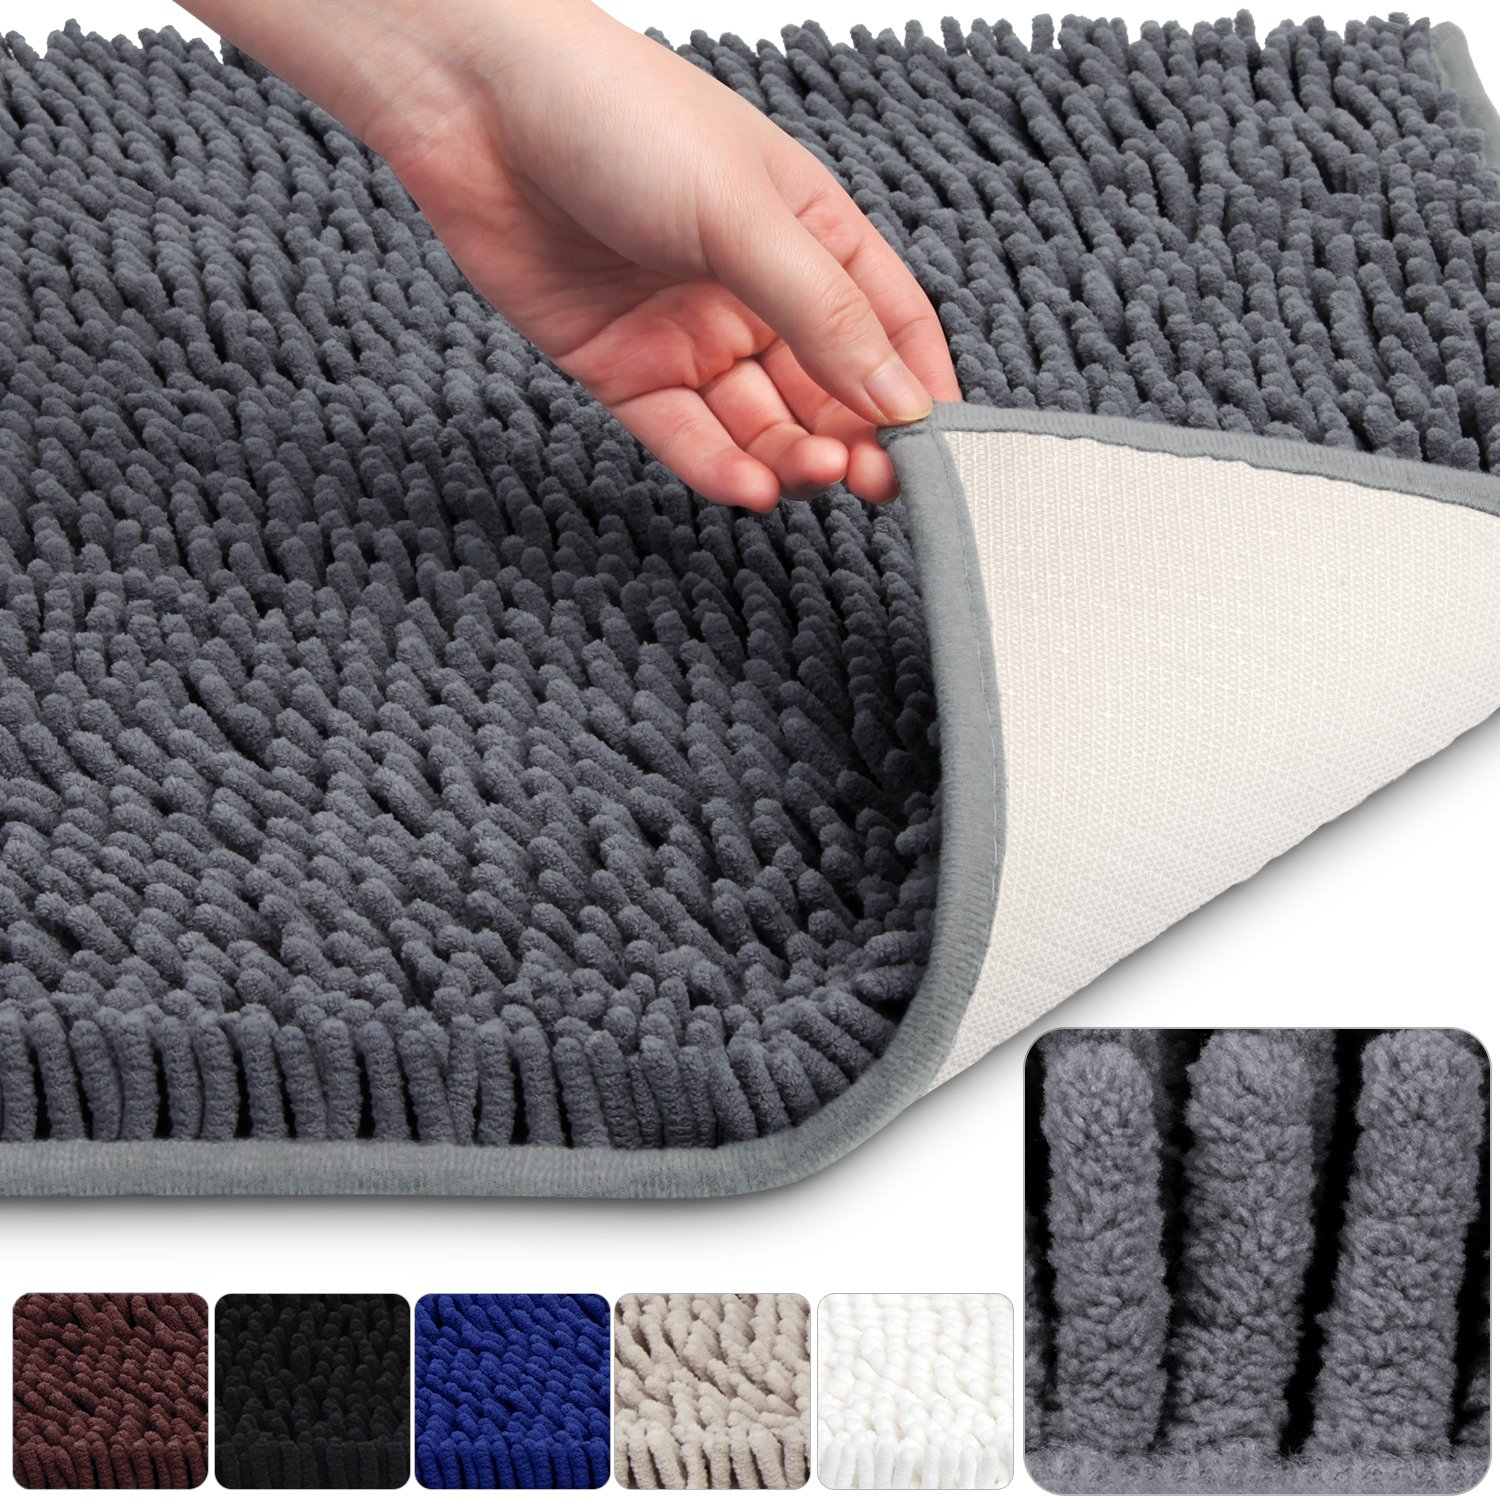 VDOMUS Soft Microfiber Shag Bath Rug, Extra Absorbent and Comfortable, Anti-slip,Machine-Washable Large Bathroom Mat, 32'' x 20'', Grey by VDOMUS